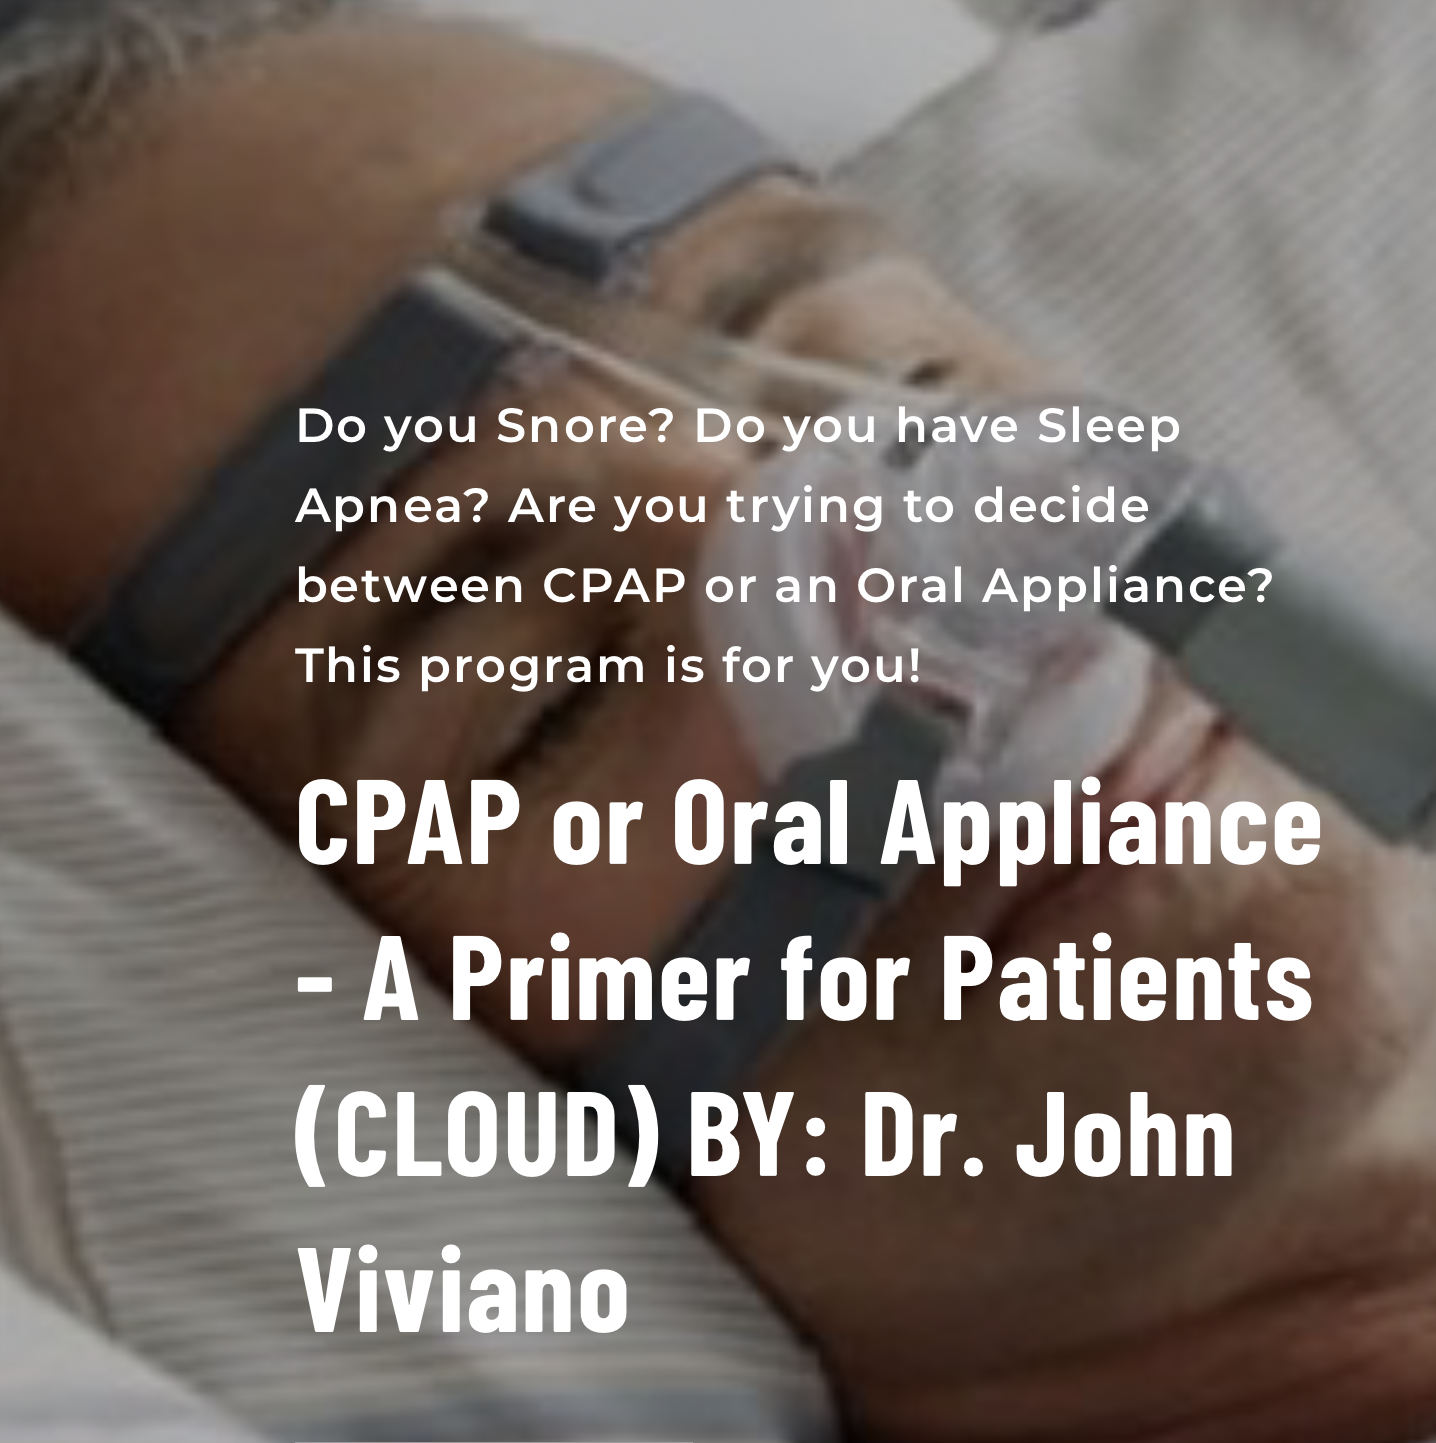 Dr. Viviano reviews CPAP and OAT as per the Literature and the typical patient's experience. - Information provided per the American Academy of Dental Sleep Medicine and the American Academy of Sleep Medicine Evidence Based Guidelines30 Minute Program: Register Today … View Online at Your Convenience